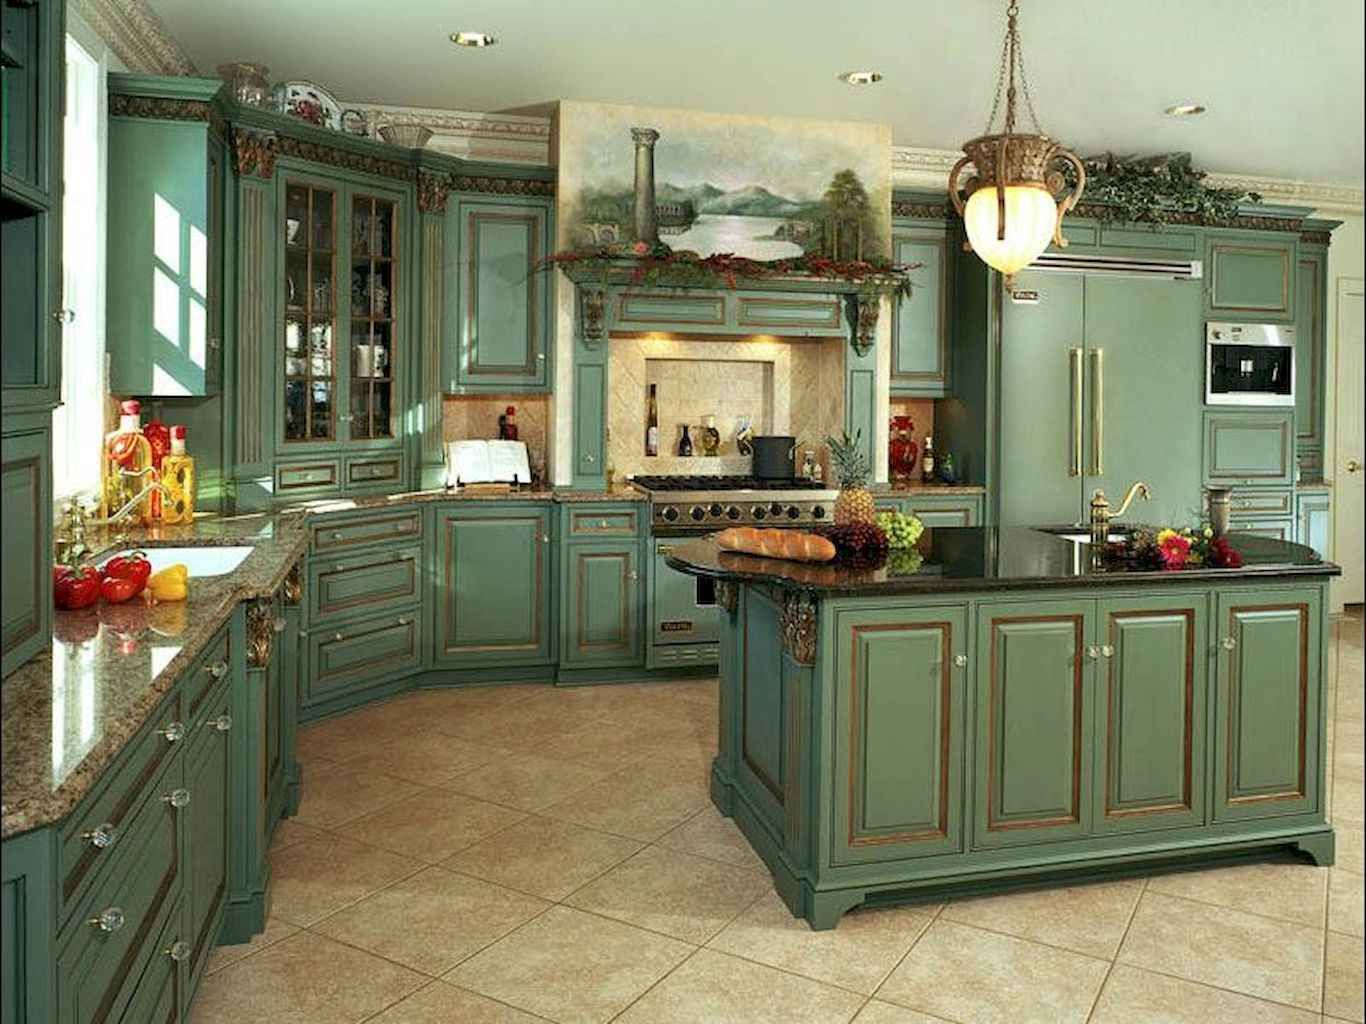 55 Gorgeous French Country Style Kitchen Decor Ideas Gladecor Com French Country Kitchen Cabinets Country Kitchen Cabinets Kitchen Design Decor